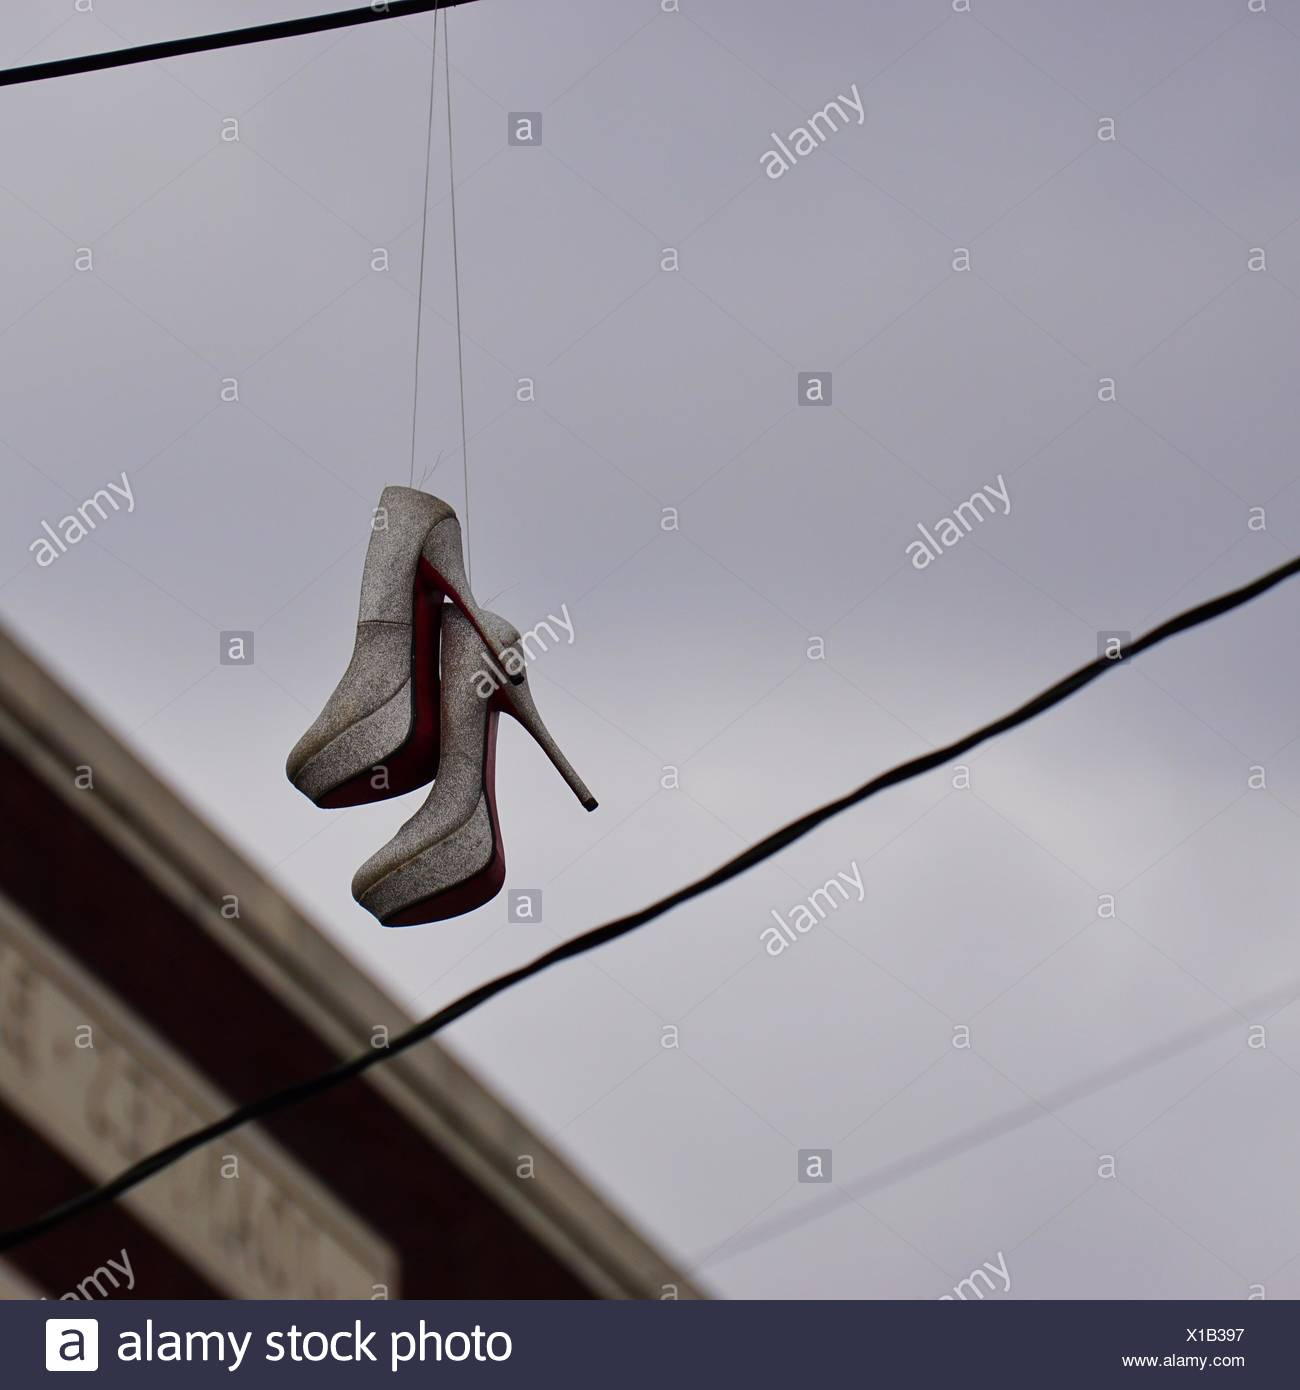 Shoes Hanging On Wire Stock Photos & Shoes Hanging On Wire Stock ...